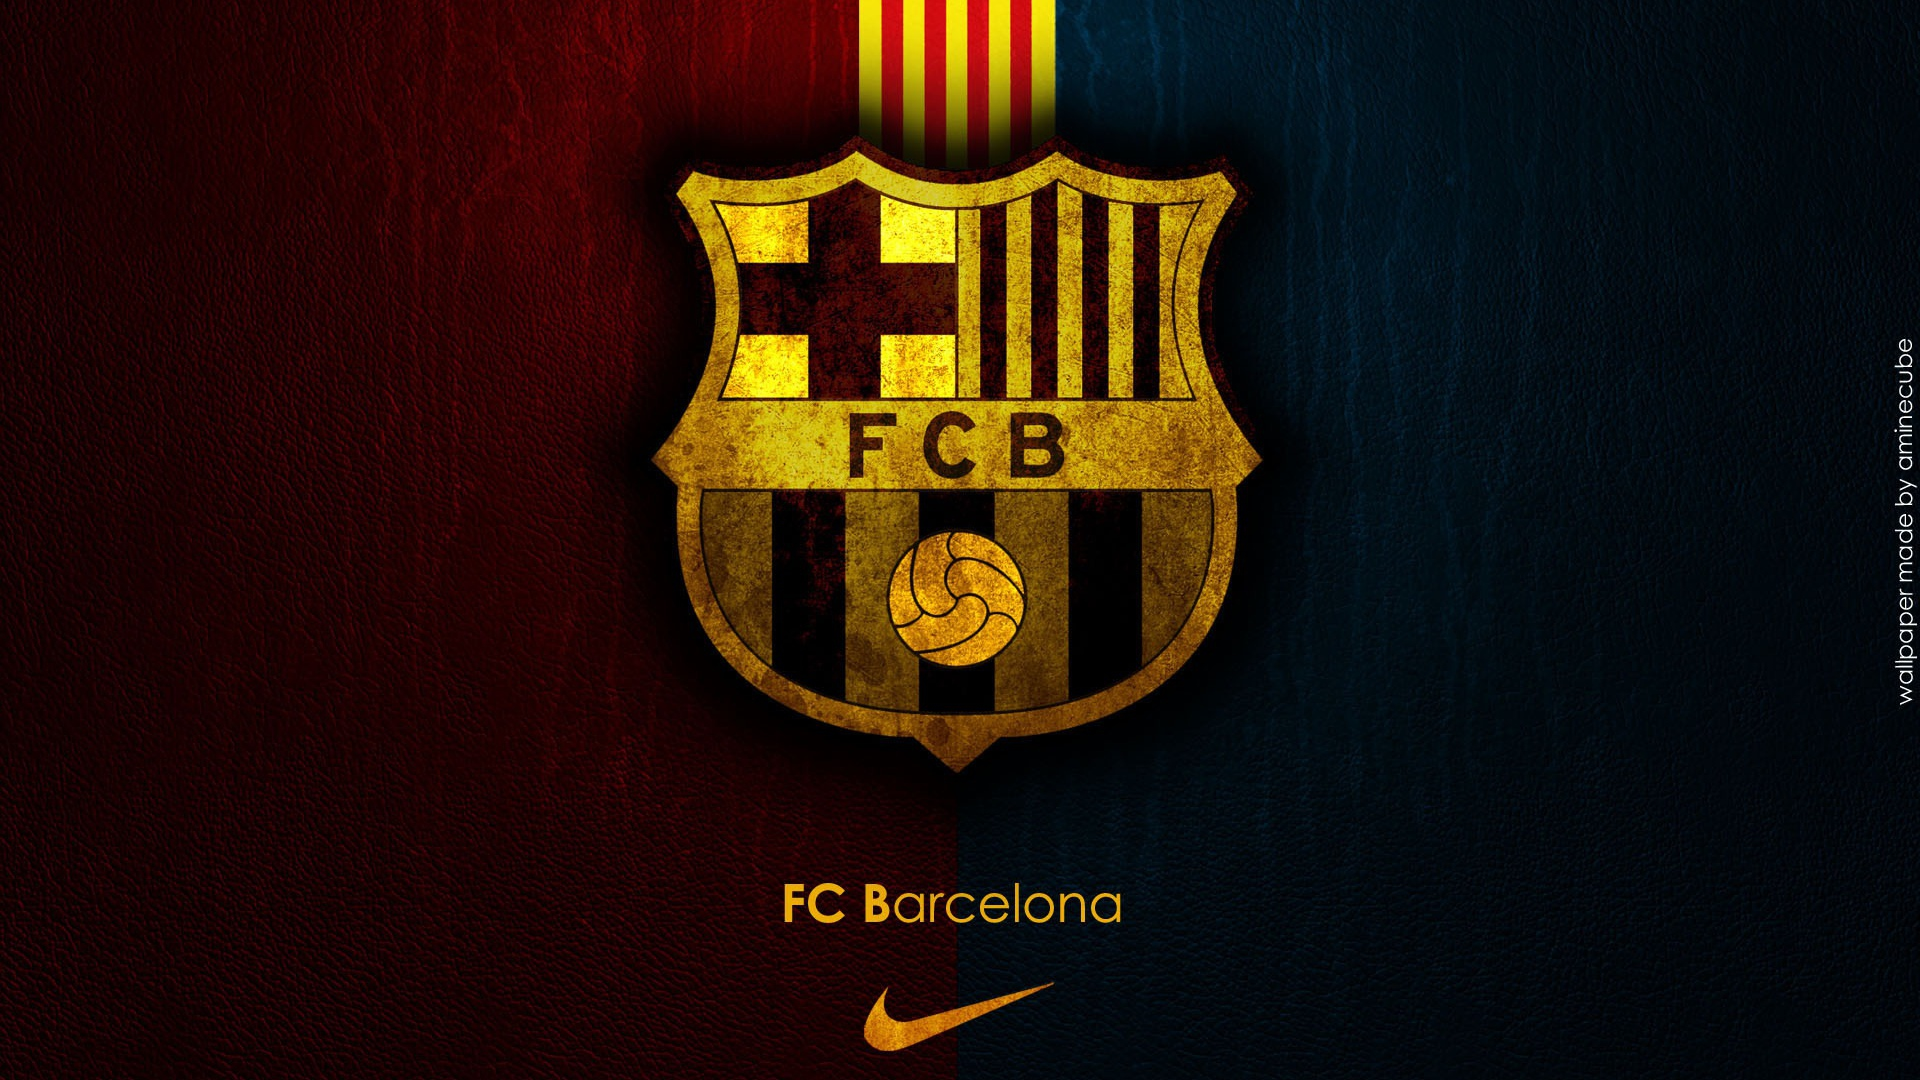 Wallpaper Barca